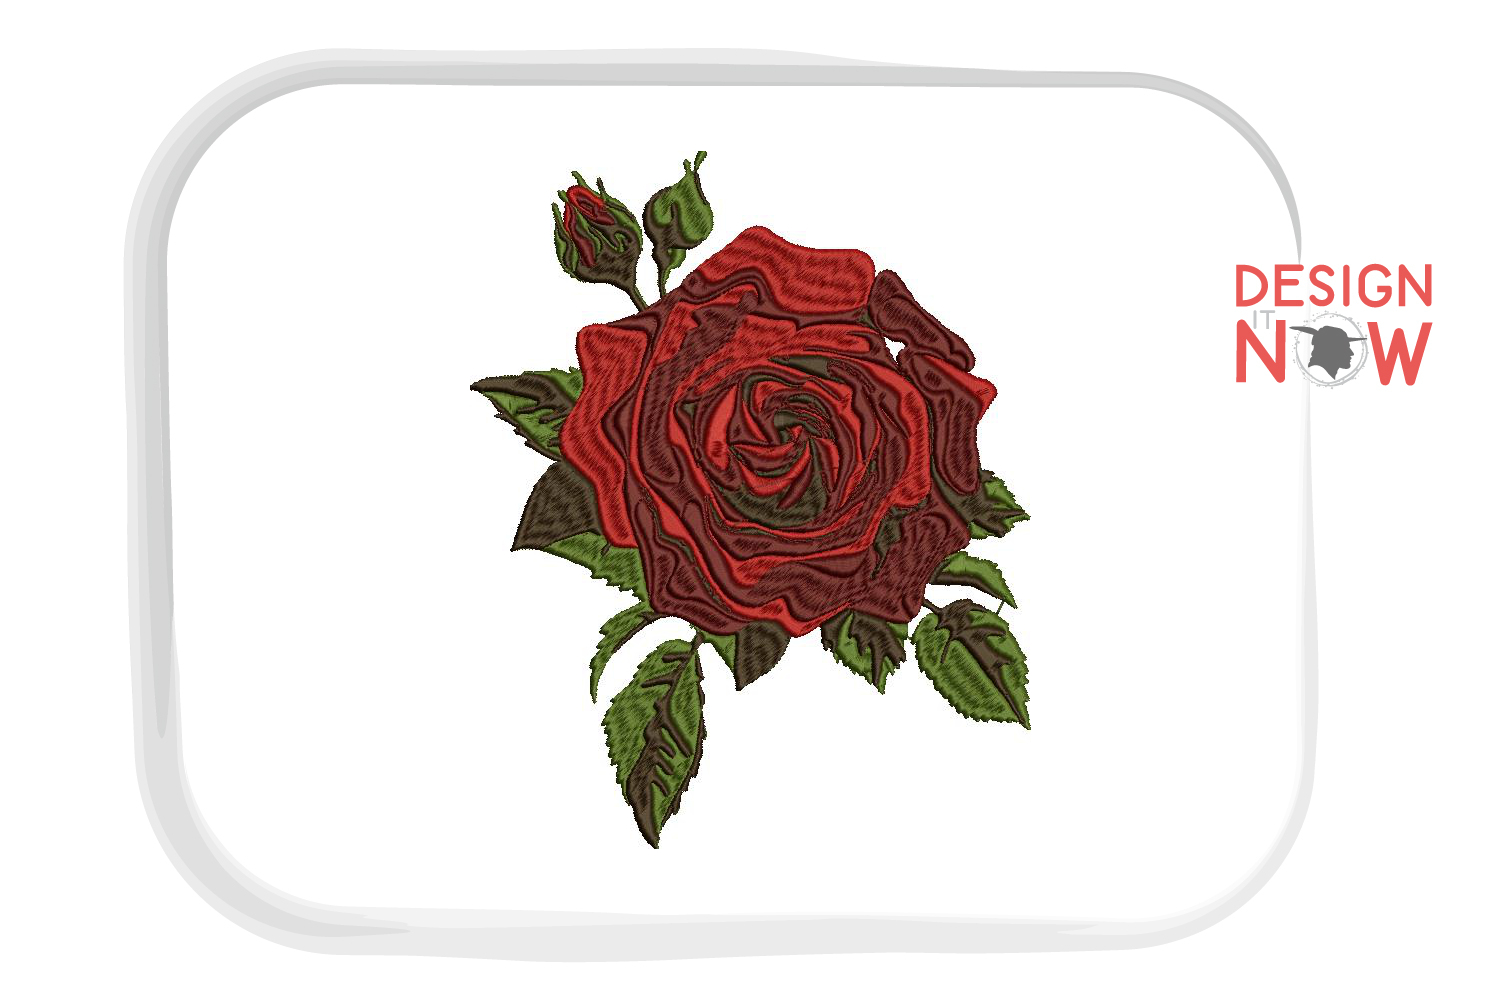 Rose Embroidery Design, Rose Embroidery, Flower Design example image 1